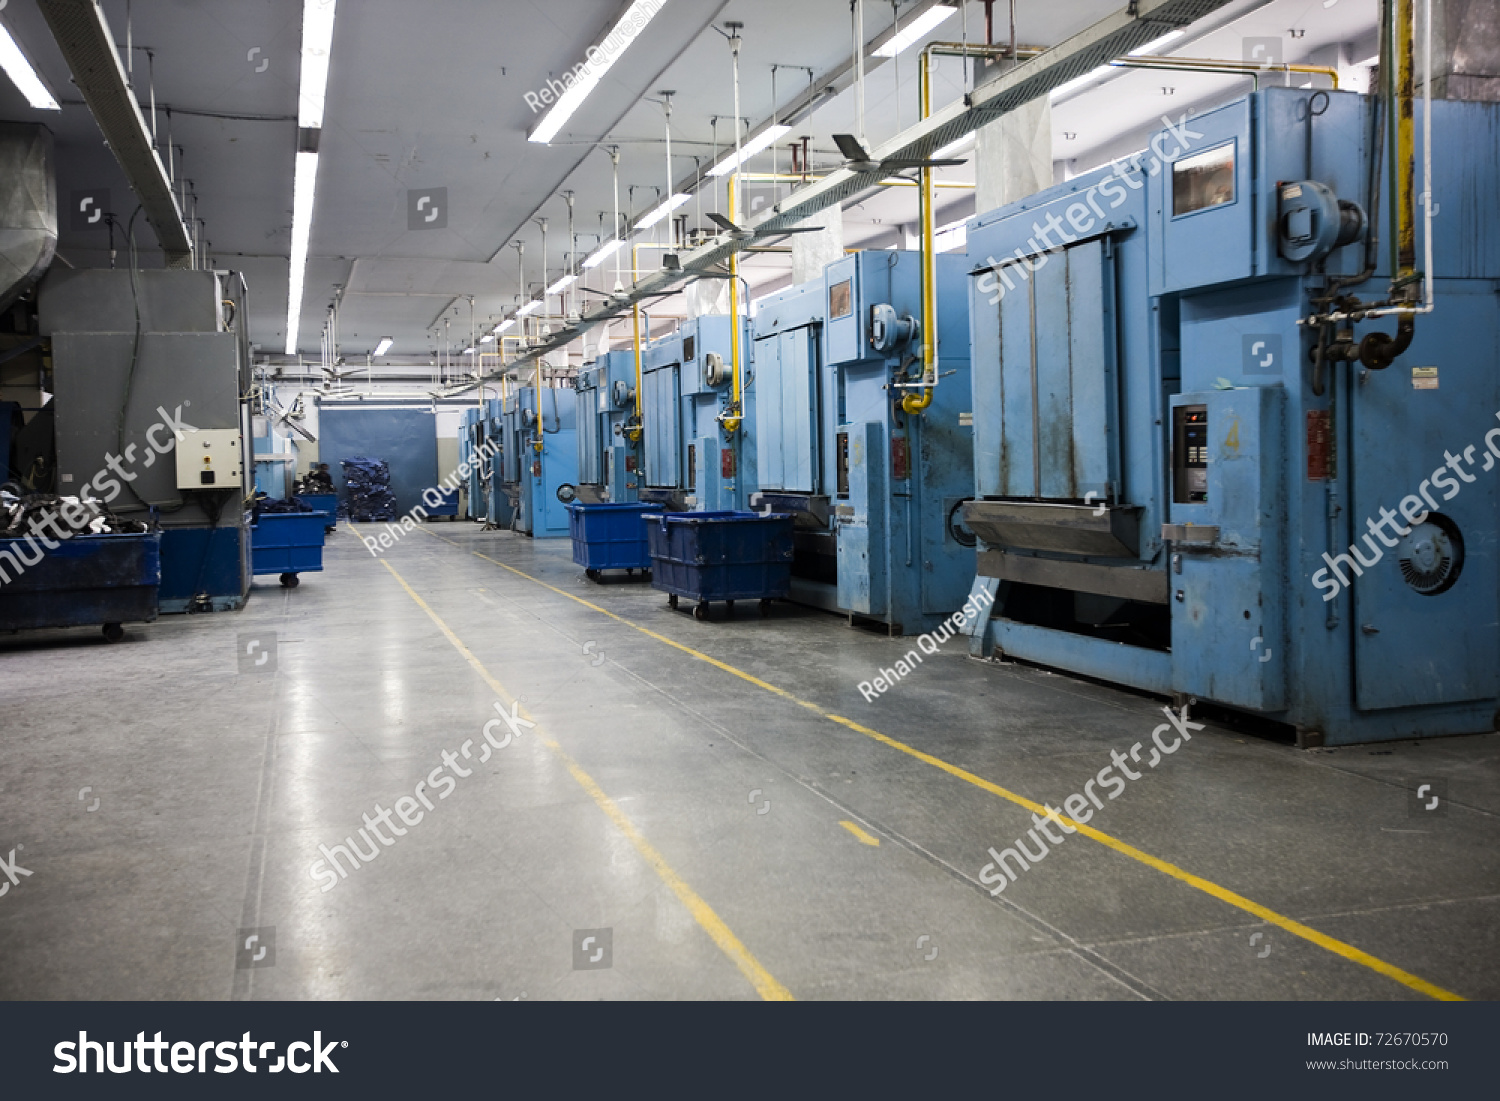 Laundry Machines At A Factory For Washing The Garments In ...